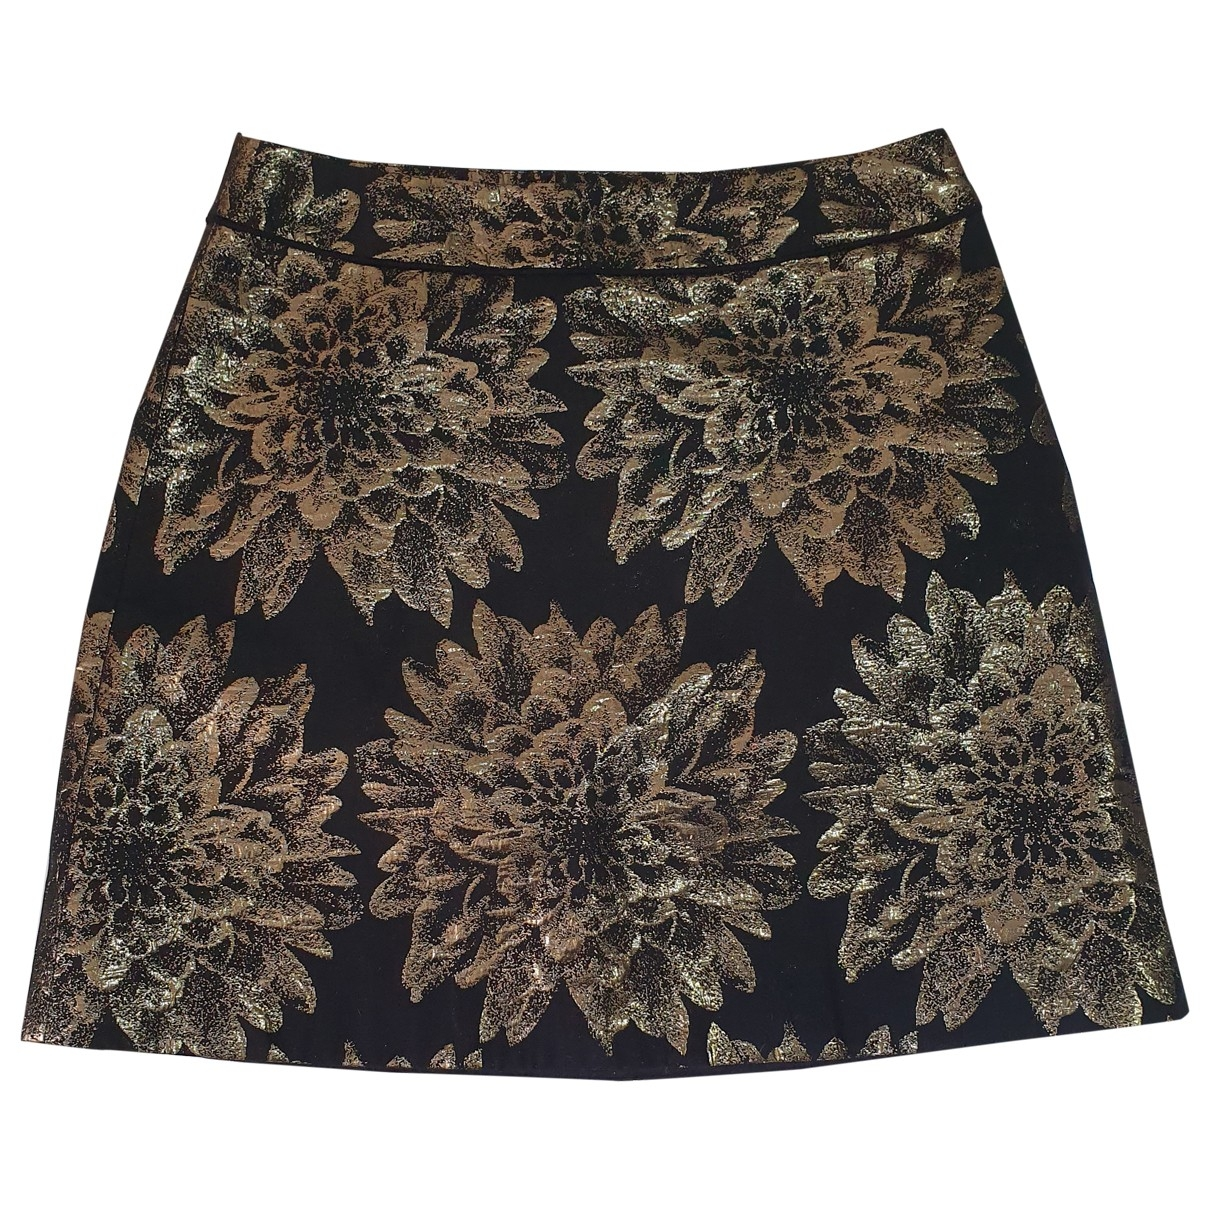 Karen Millen \N Gold skirt for Women 38 FR